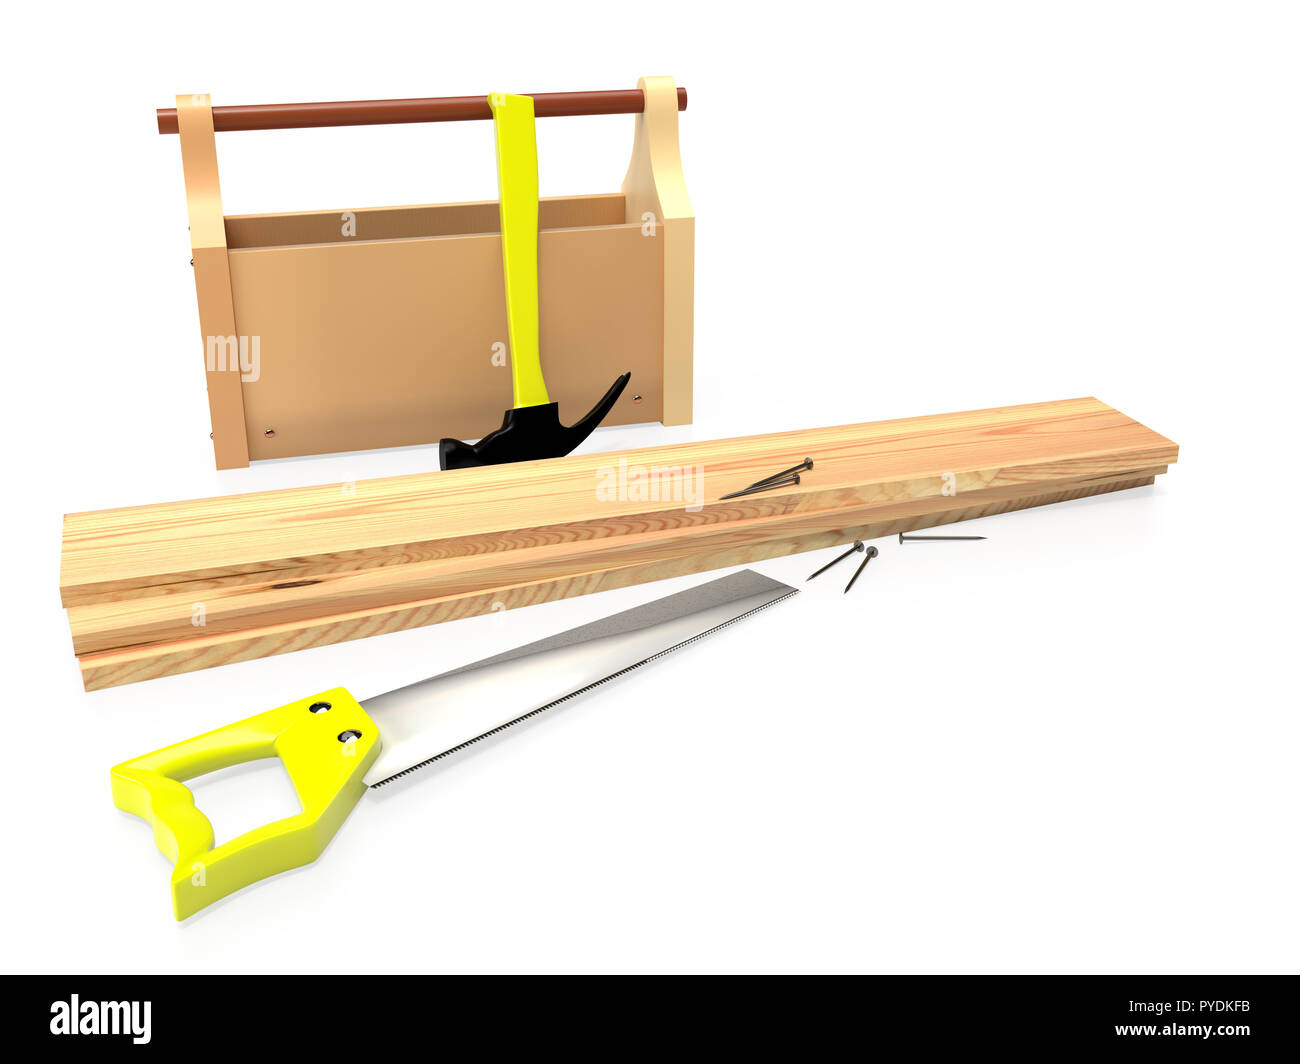 Hammer, hacksaw, toolbox, wooden planks and nails on white background, isolated. 3D rendering - Stock Image